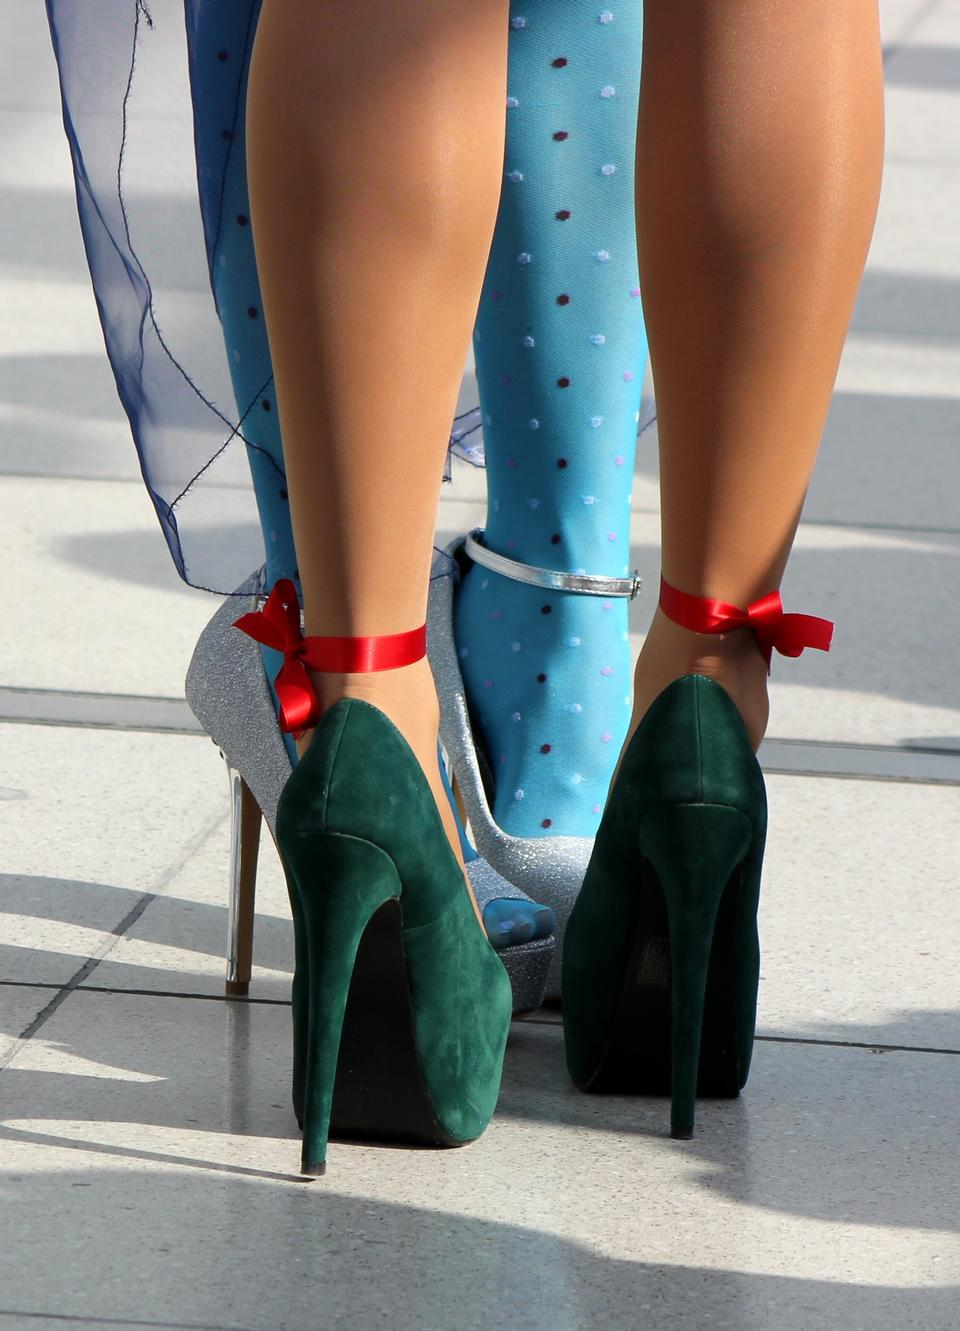 Free Sexy female high heeled green shoes on the way